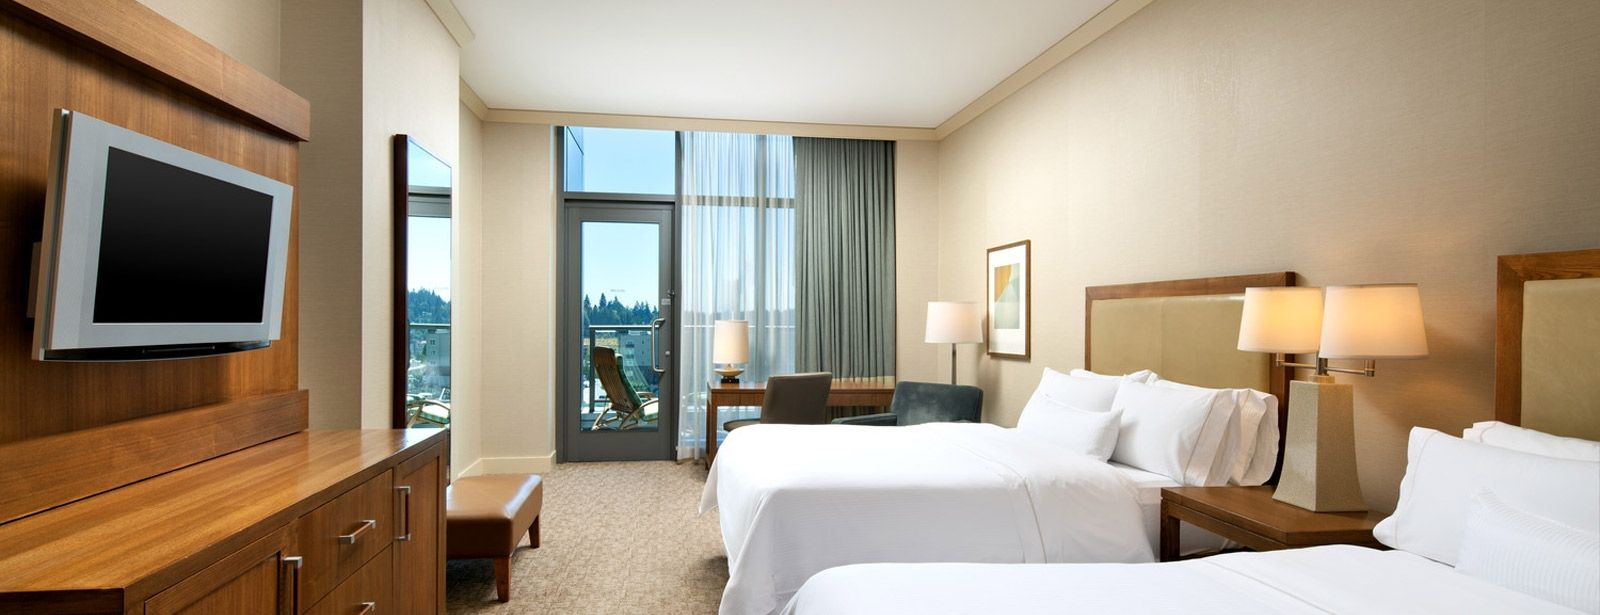 A Grand Deluxe Room with it's balcony at The Westin Bellevue